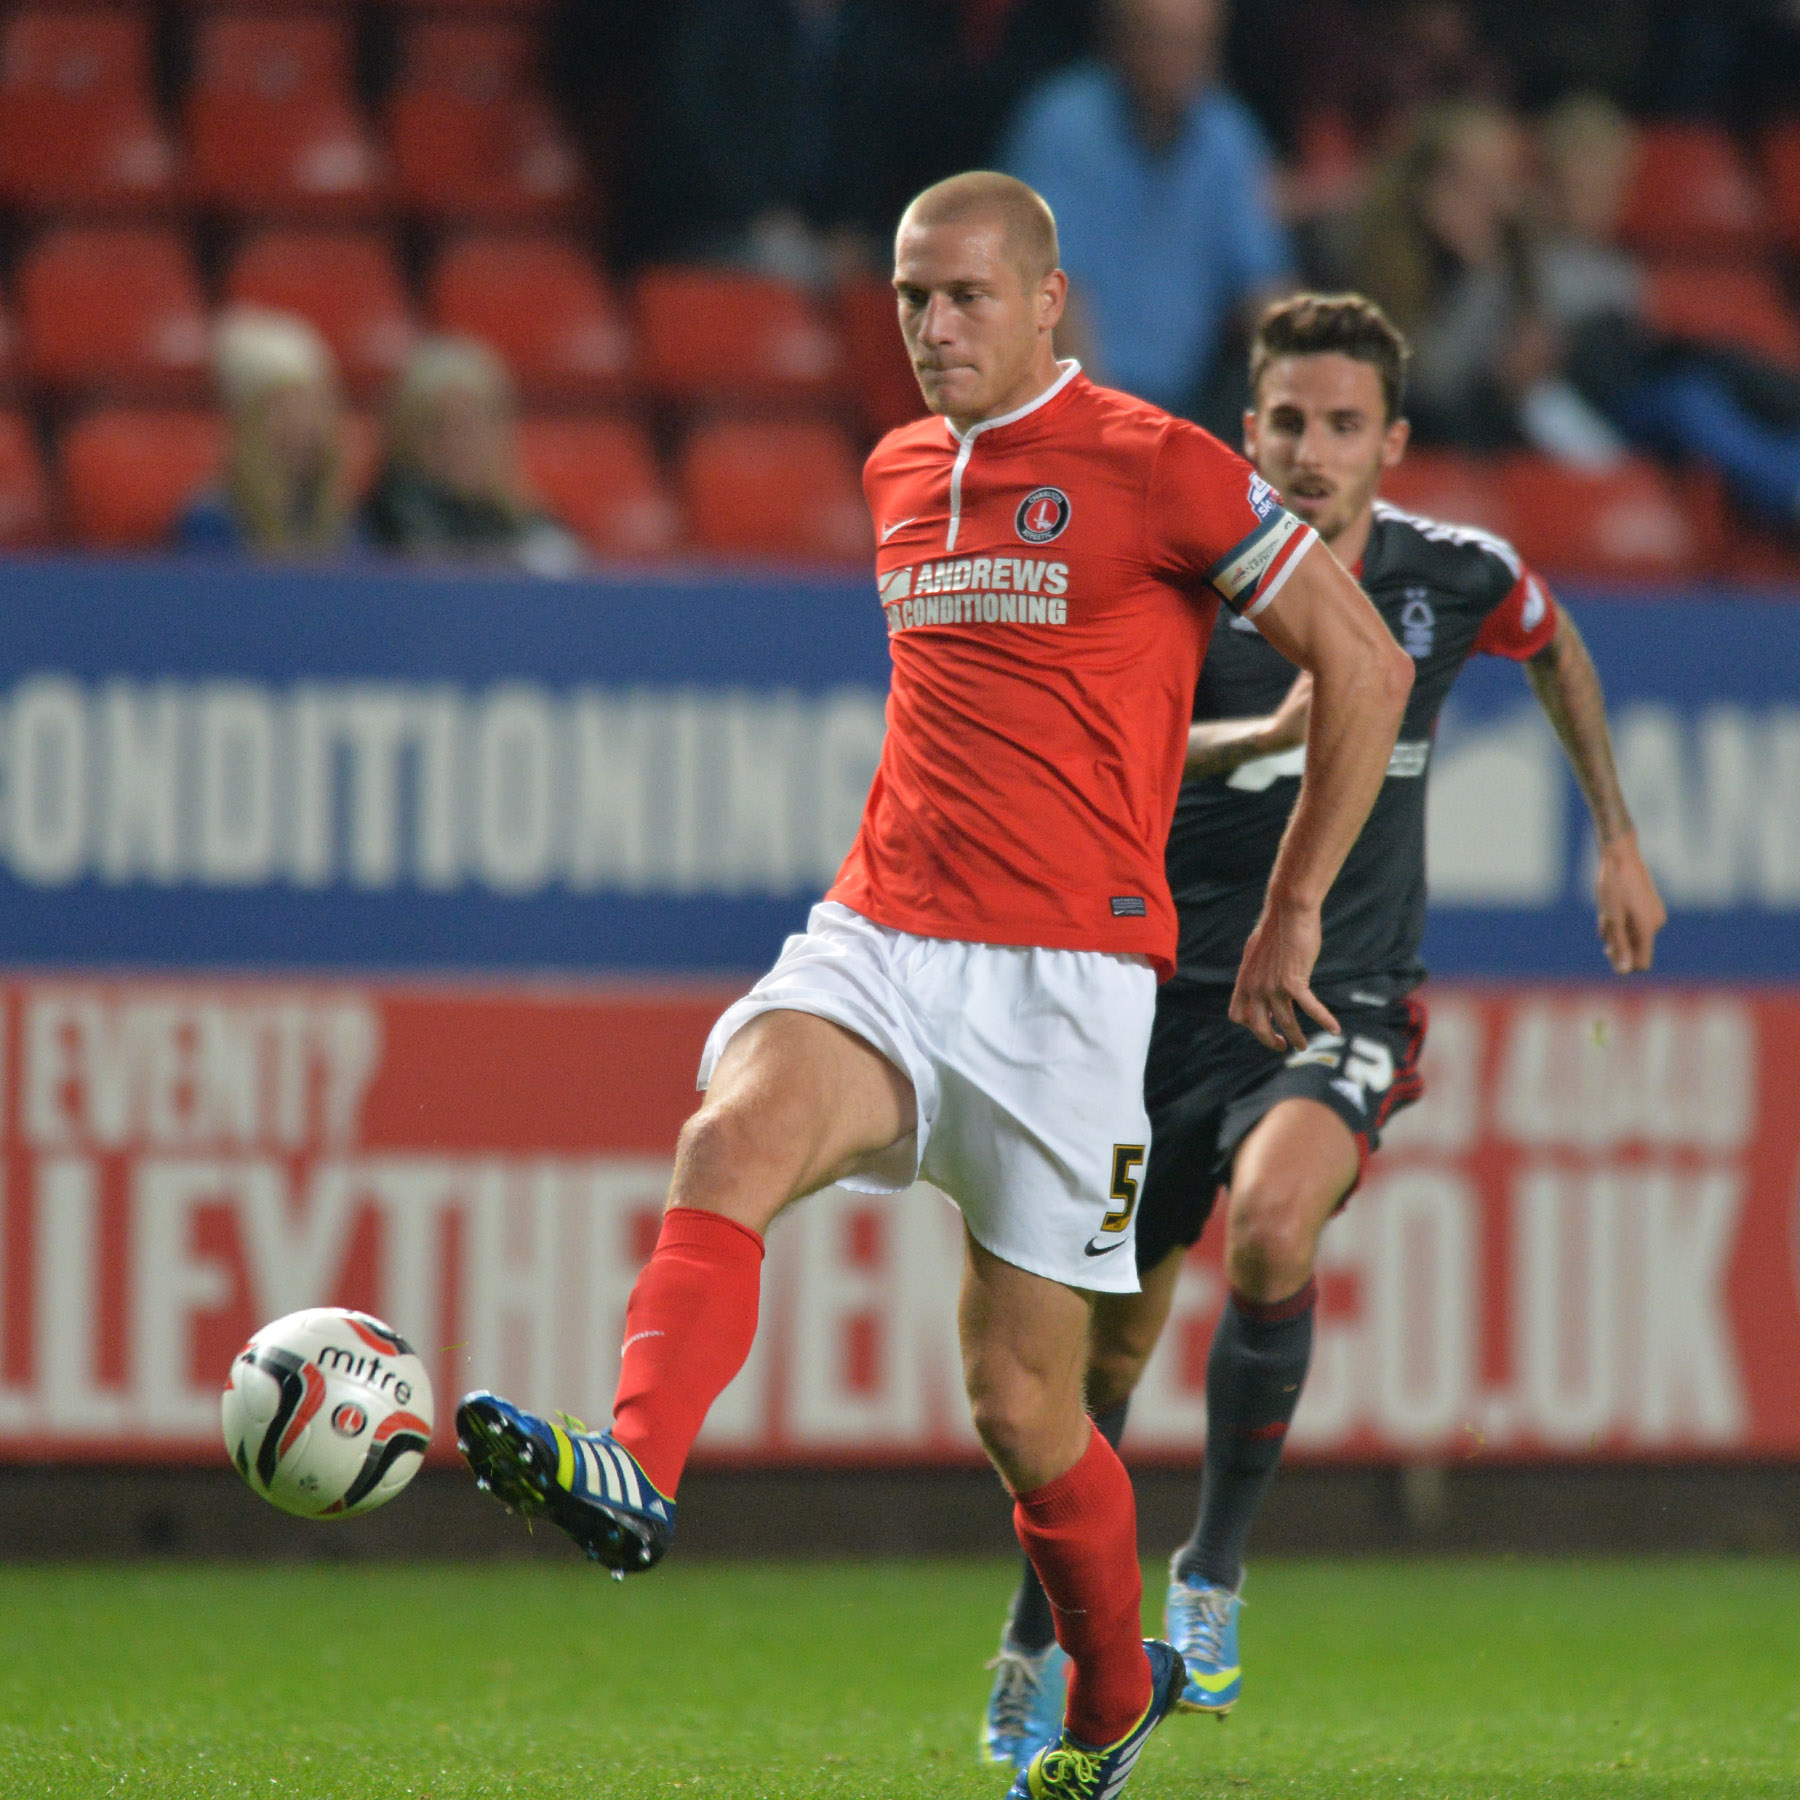 Charlton defender takes positives from Wigan display